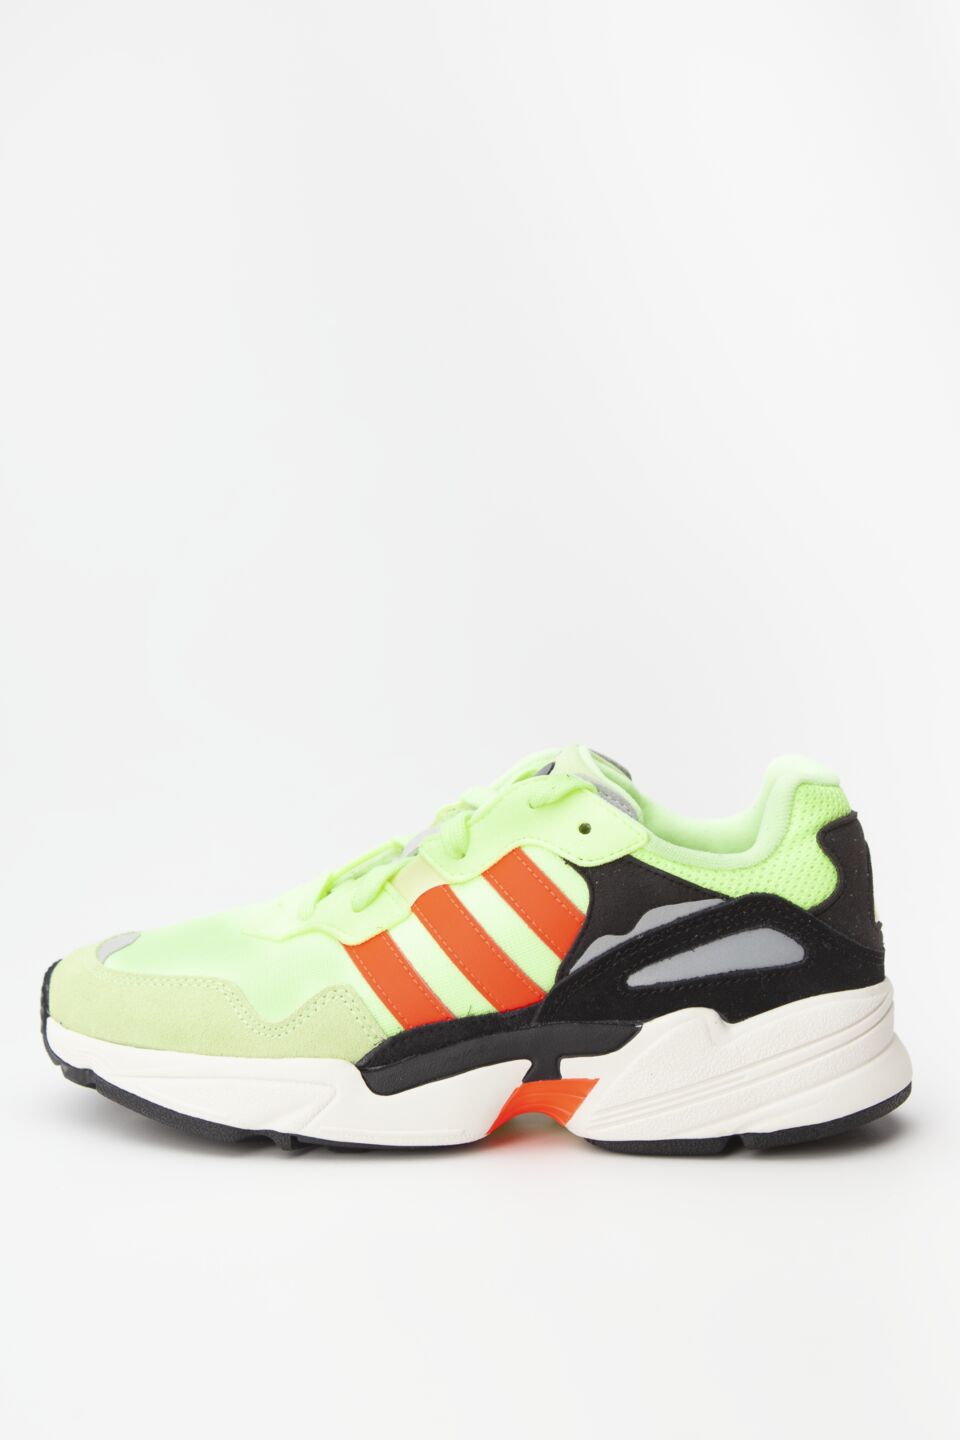 YUNG-96 HI-RES YELLOW/SOLAR RED/OFF WHITE